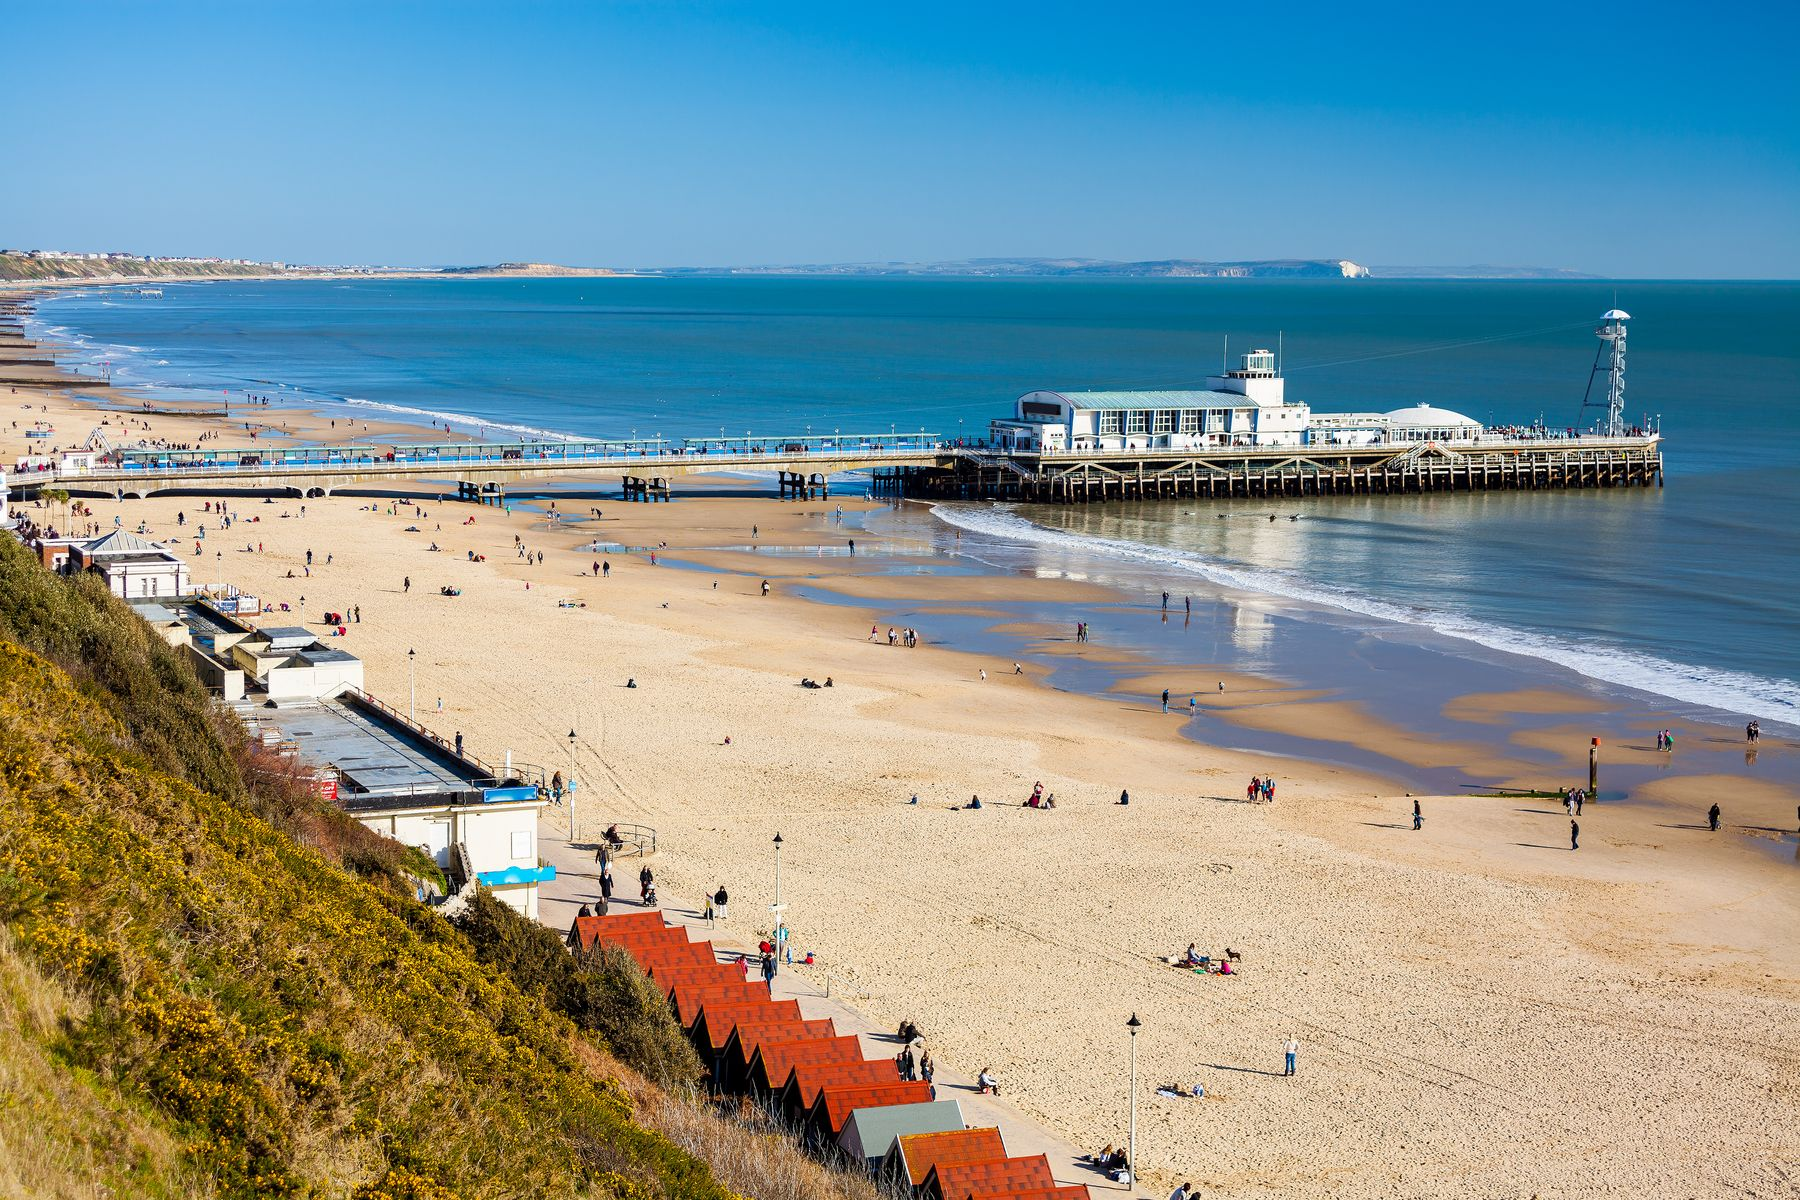 Bournemouth, with its Pier, beach, and beach huts is one of the best cities to visit in the UK